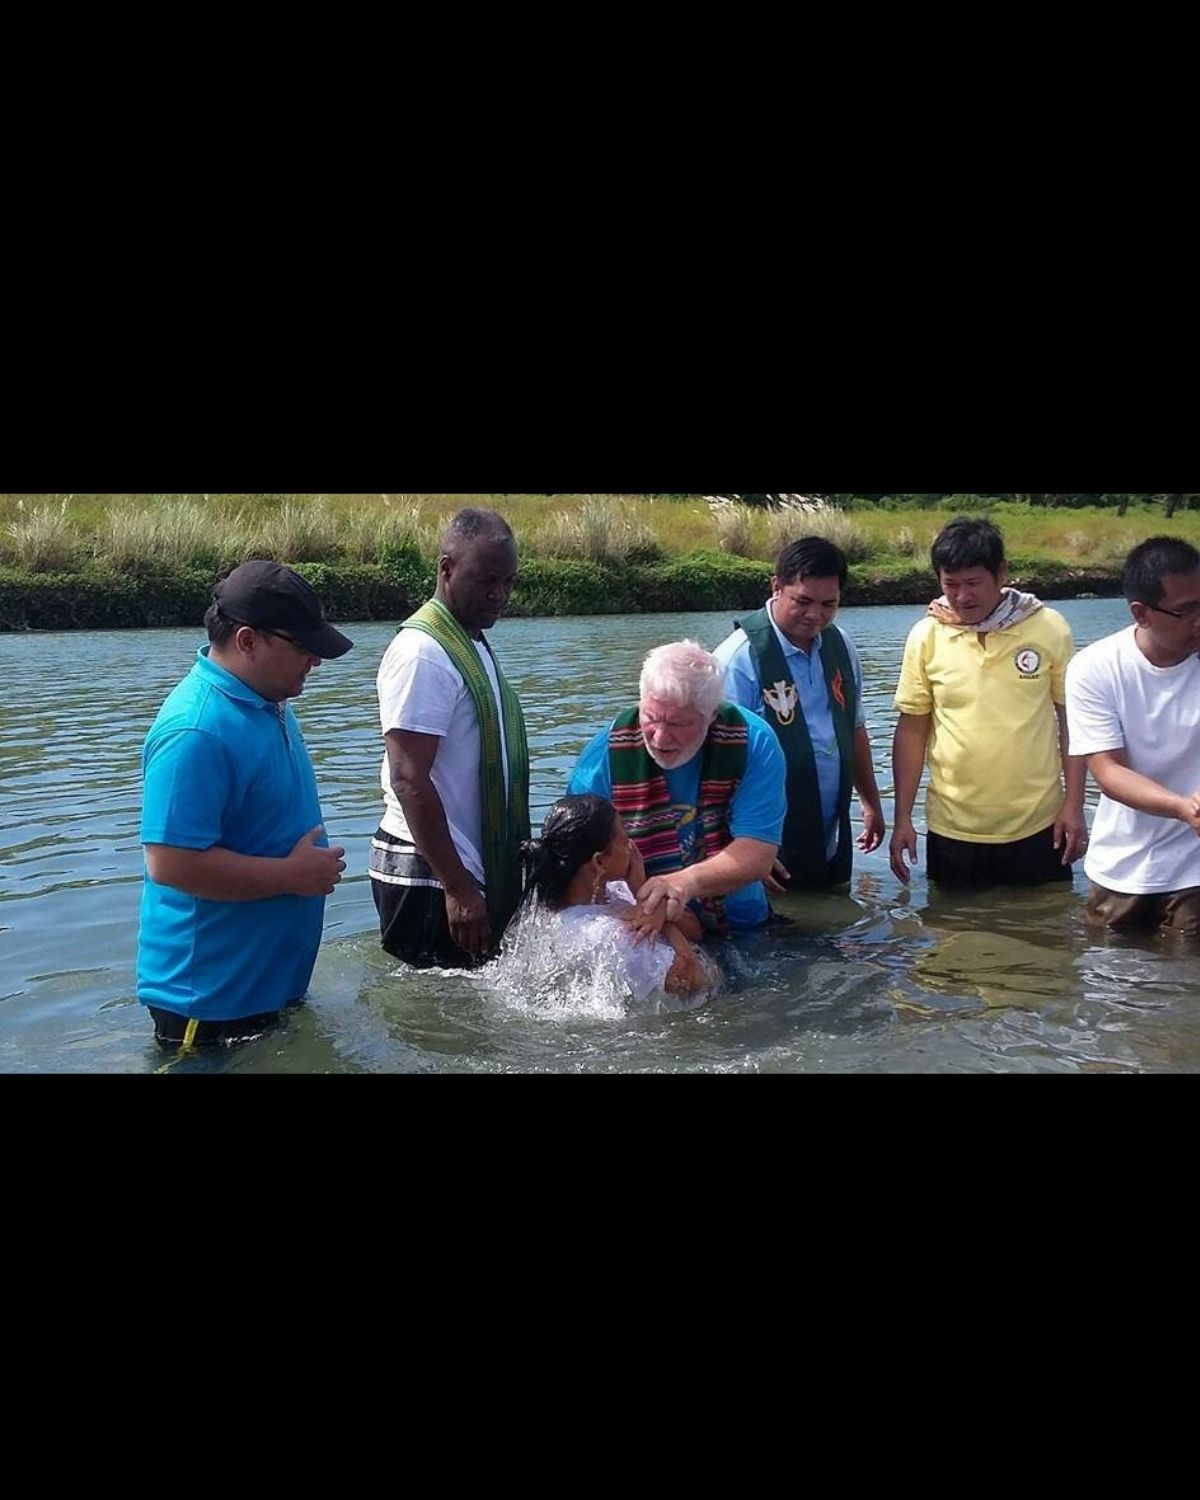 River baptism in Philippines. Photo by Rev. Joey Galinato. Canva design for UMC.org hero